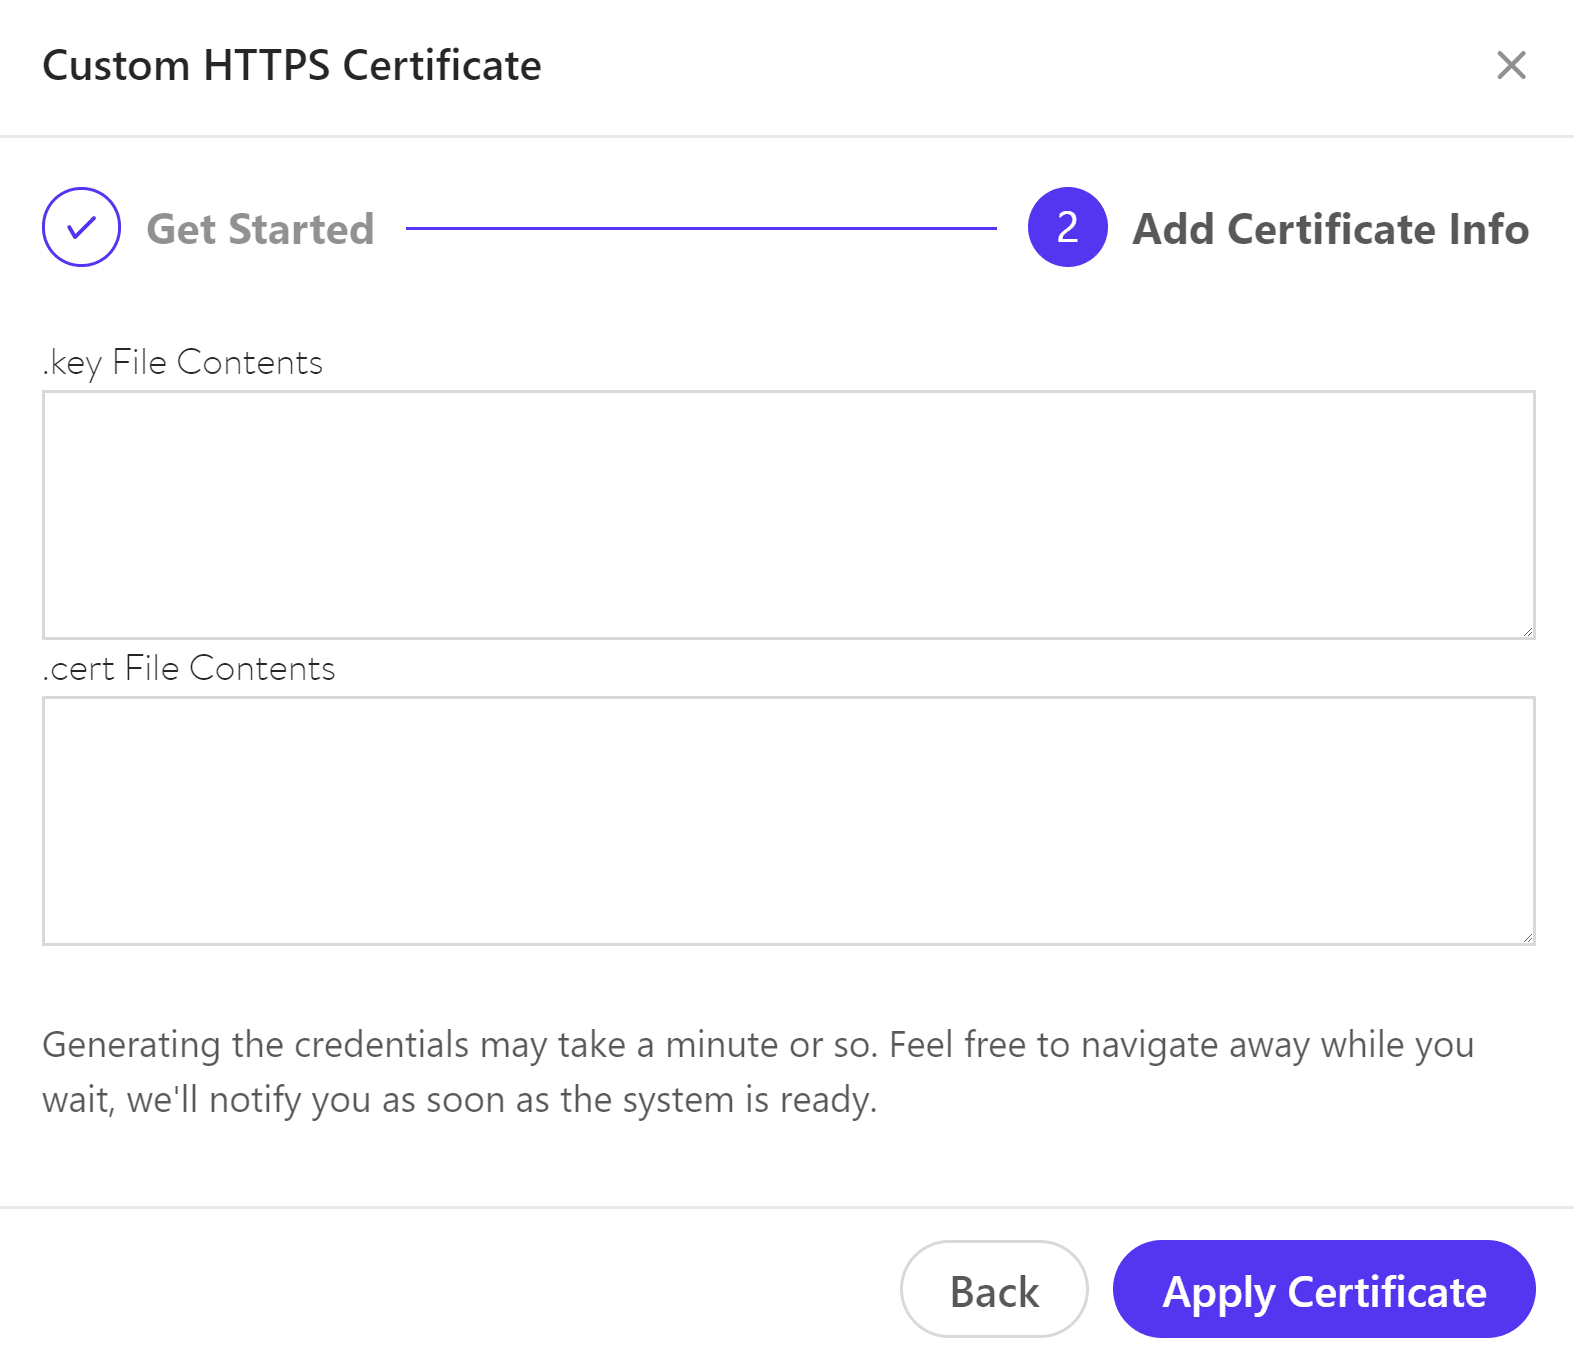 Apply certificate